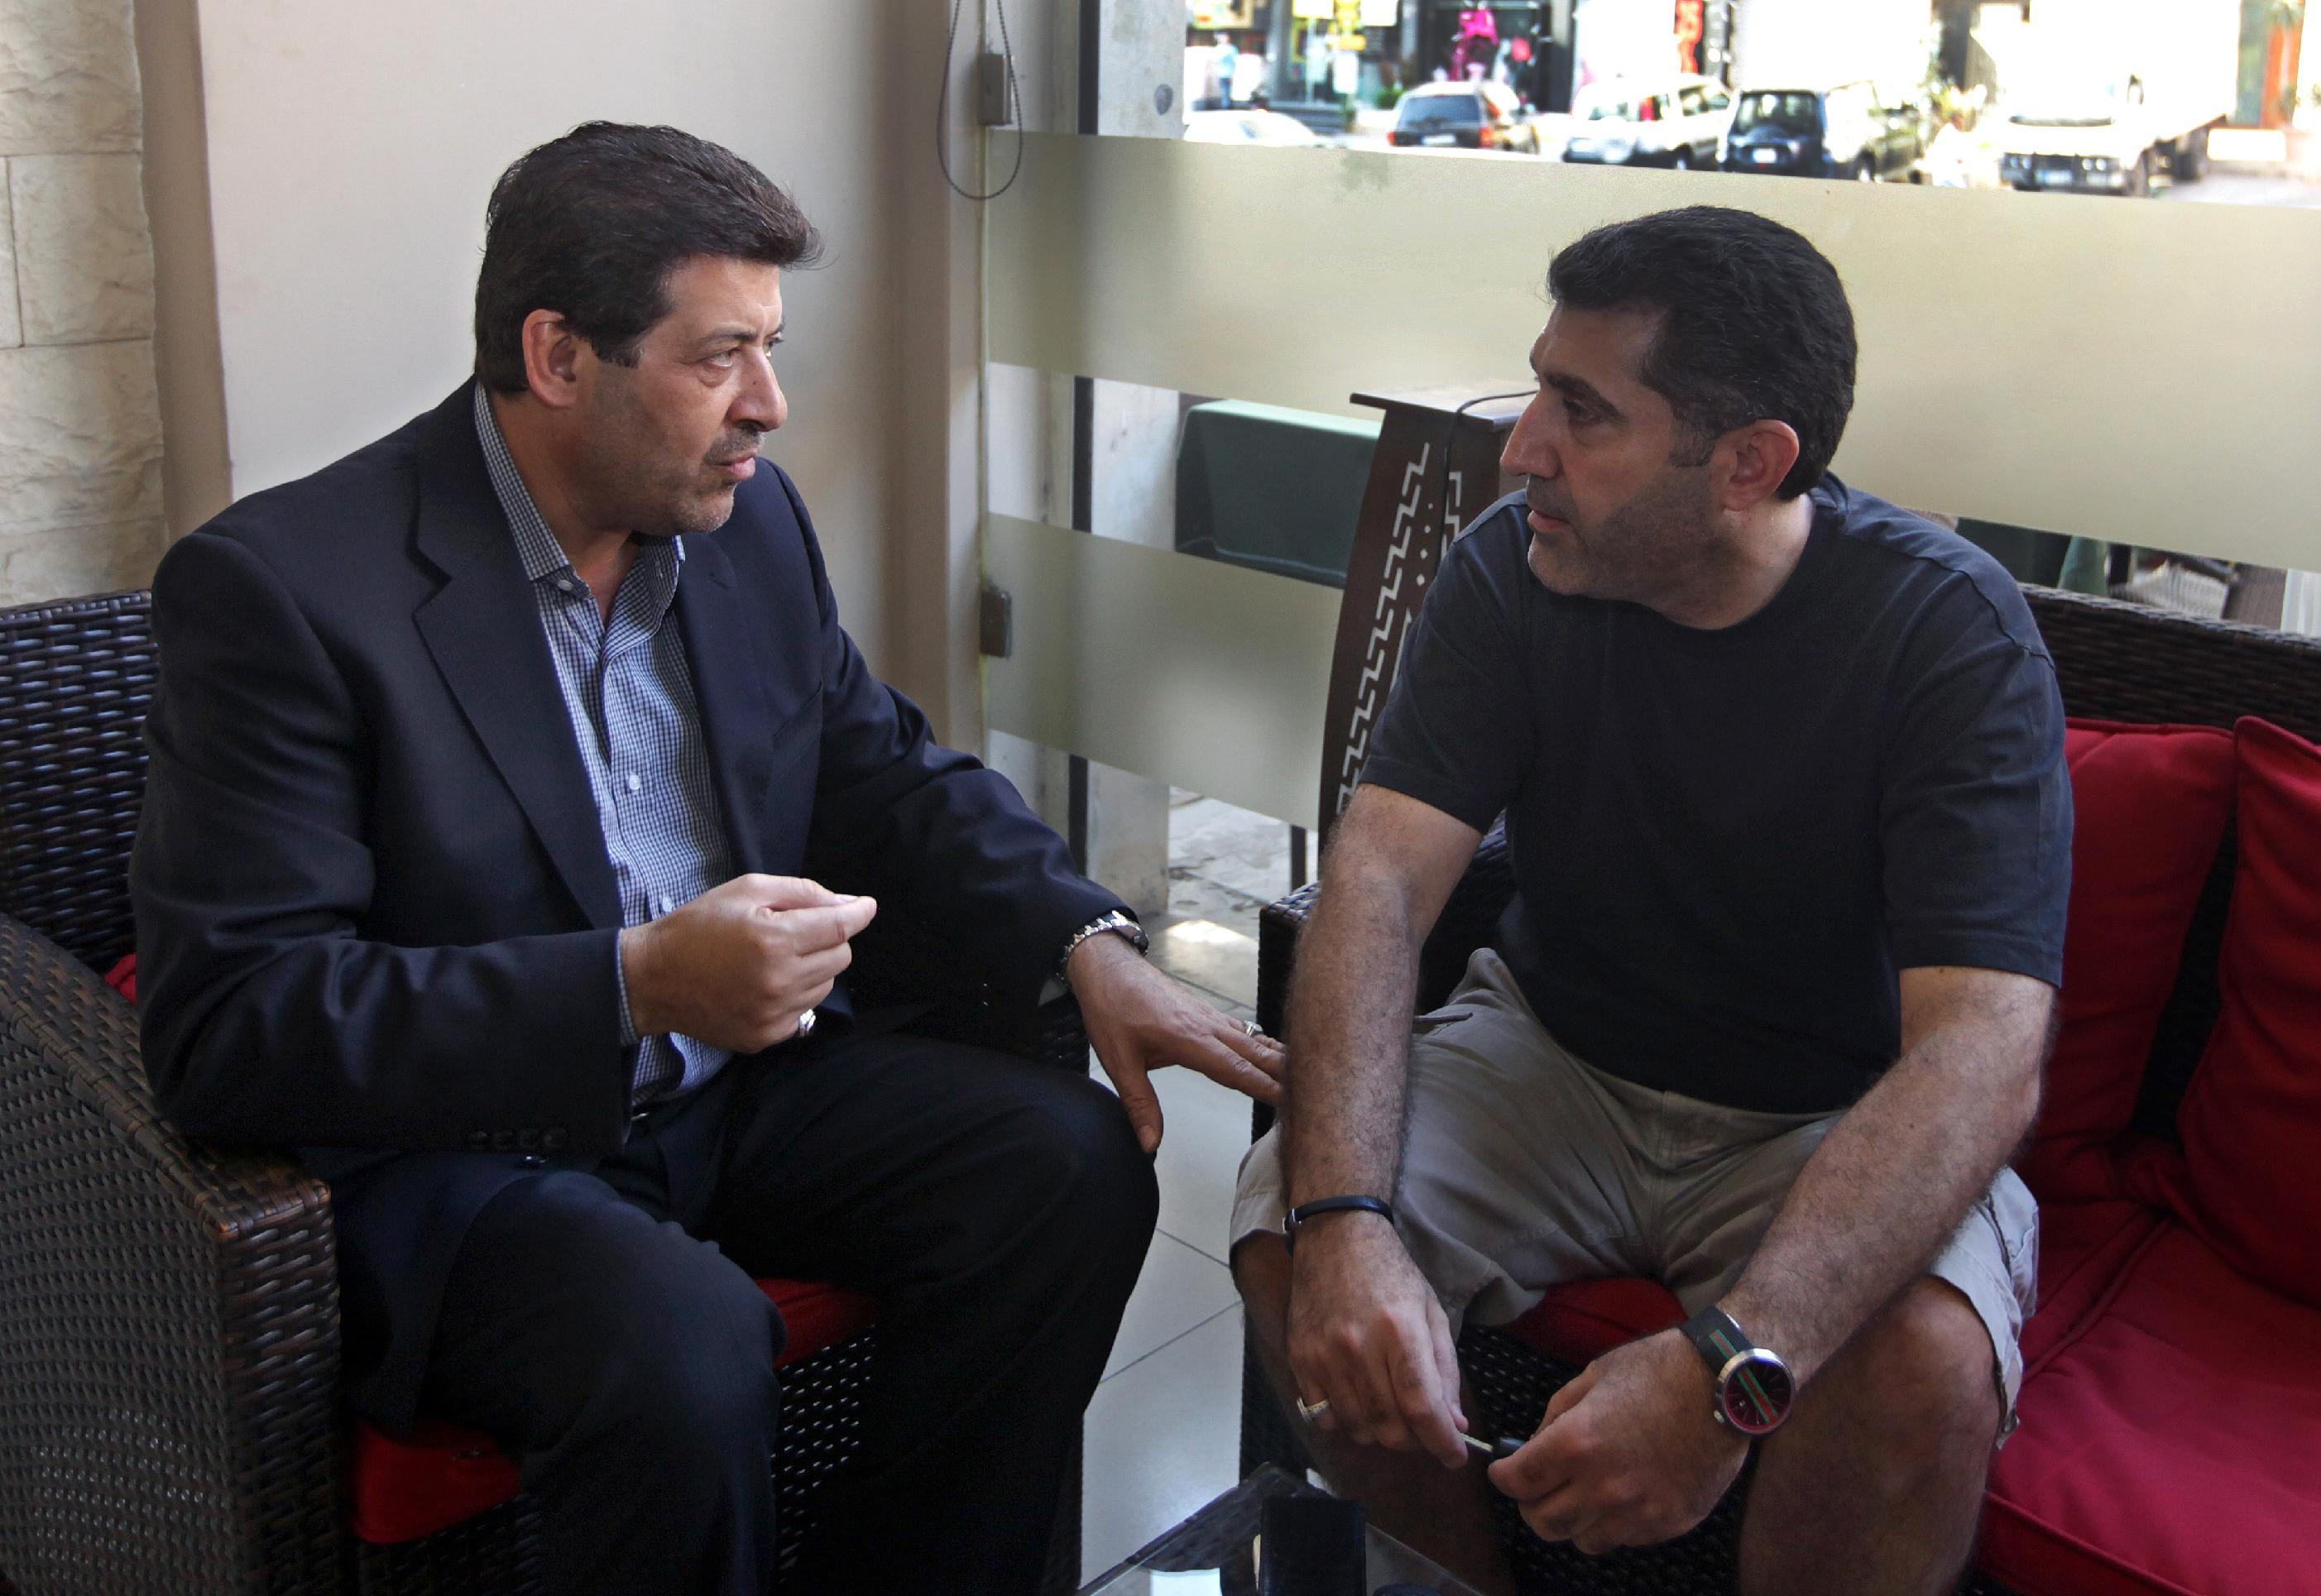 In this Wednesday, July 10, 2013 photo, Shiites Hassan Alayan, left, who was expelled from the UAE in 2009, speaks with Ali Rashid, right, who was expelled from the UAE in 2011, at a cafe in Beirut, Lebanon. Long considered by authorities as a security threat, hundreds of Shiites have been quietly expelled from the United Arab Emirates over the past few years on suspicion of being supporters of Hezbollah. Diplomats and Shiite families in Lebanon say deportations have surged in the past few months after the militant group group publicly joined the civil war in Syria on the side of President Bashar Assad, an arch enemy of the Gulf's rulers.(AP Photo/Bilal Hussein)